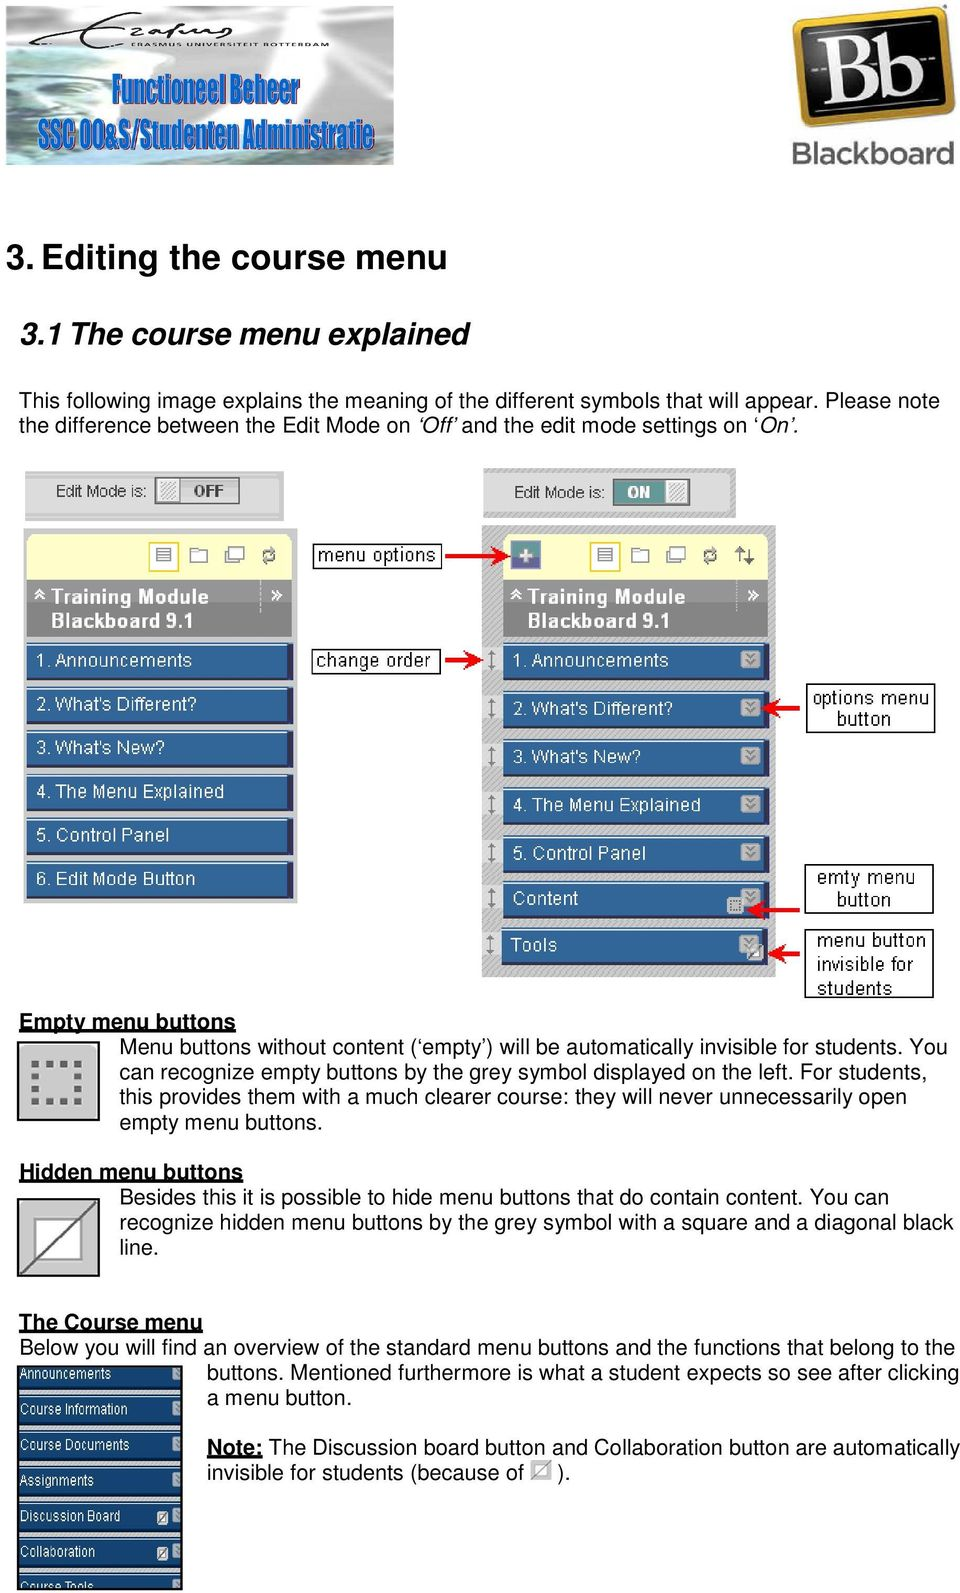 You can recognize empty buttons by the grey symbol displayed on the left. For students, this provides them with a much clearer course: they will never unnecessarily open empty menu buttons.